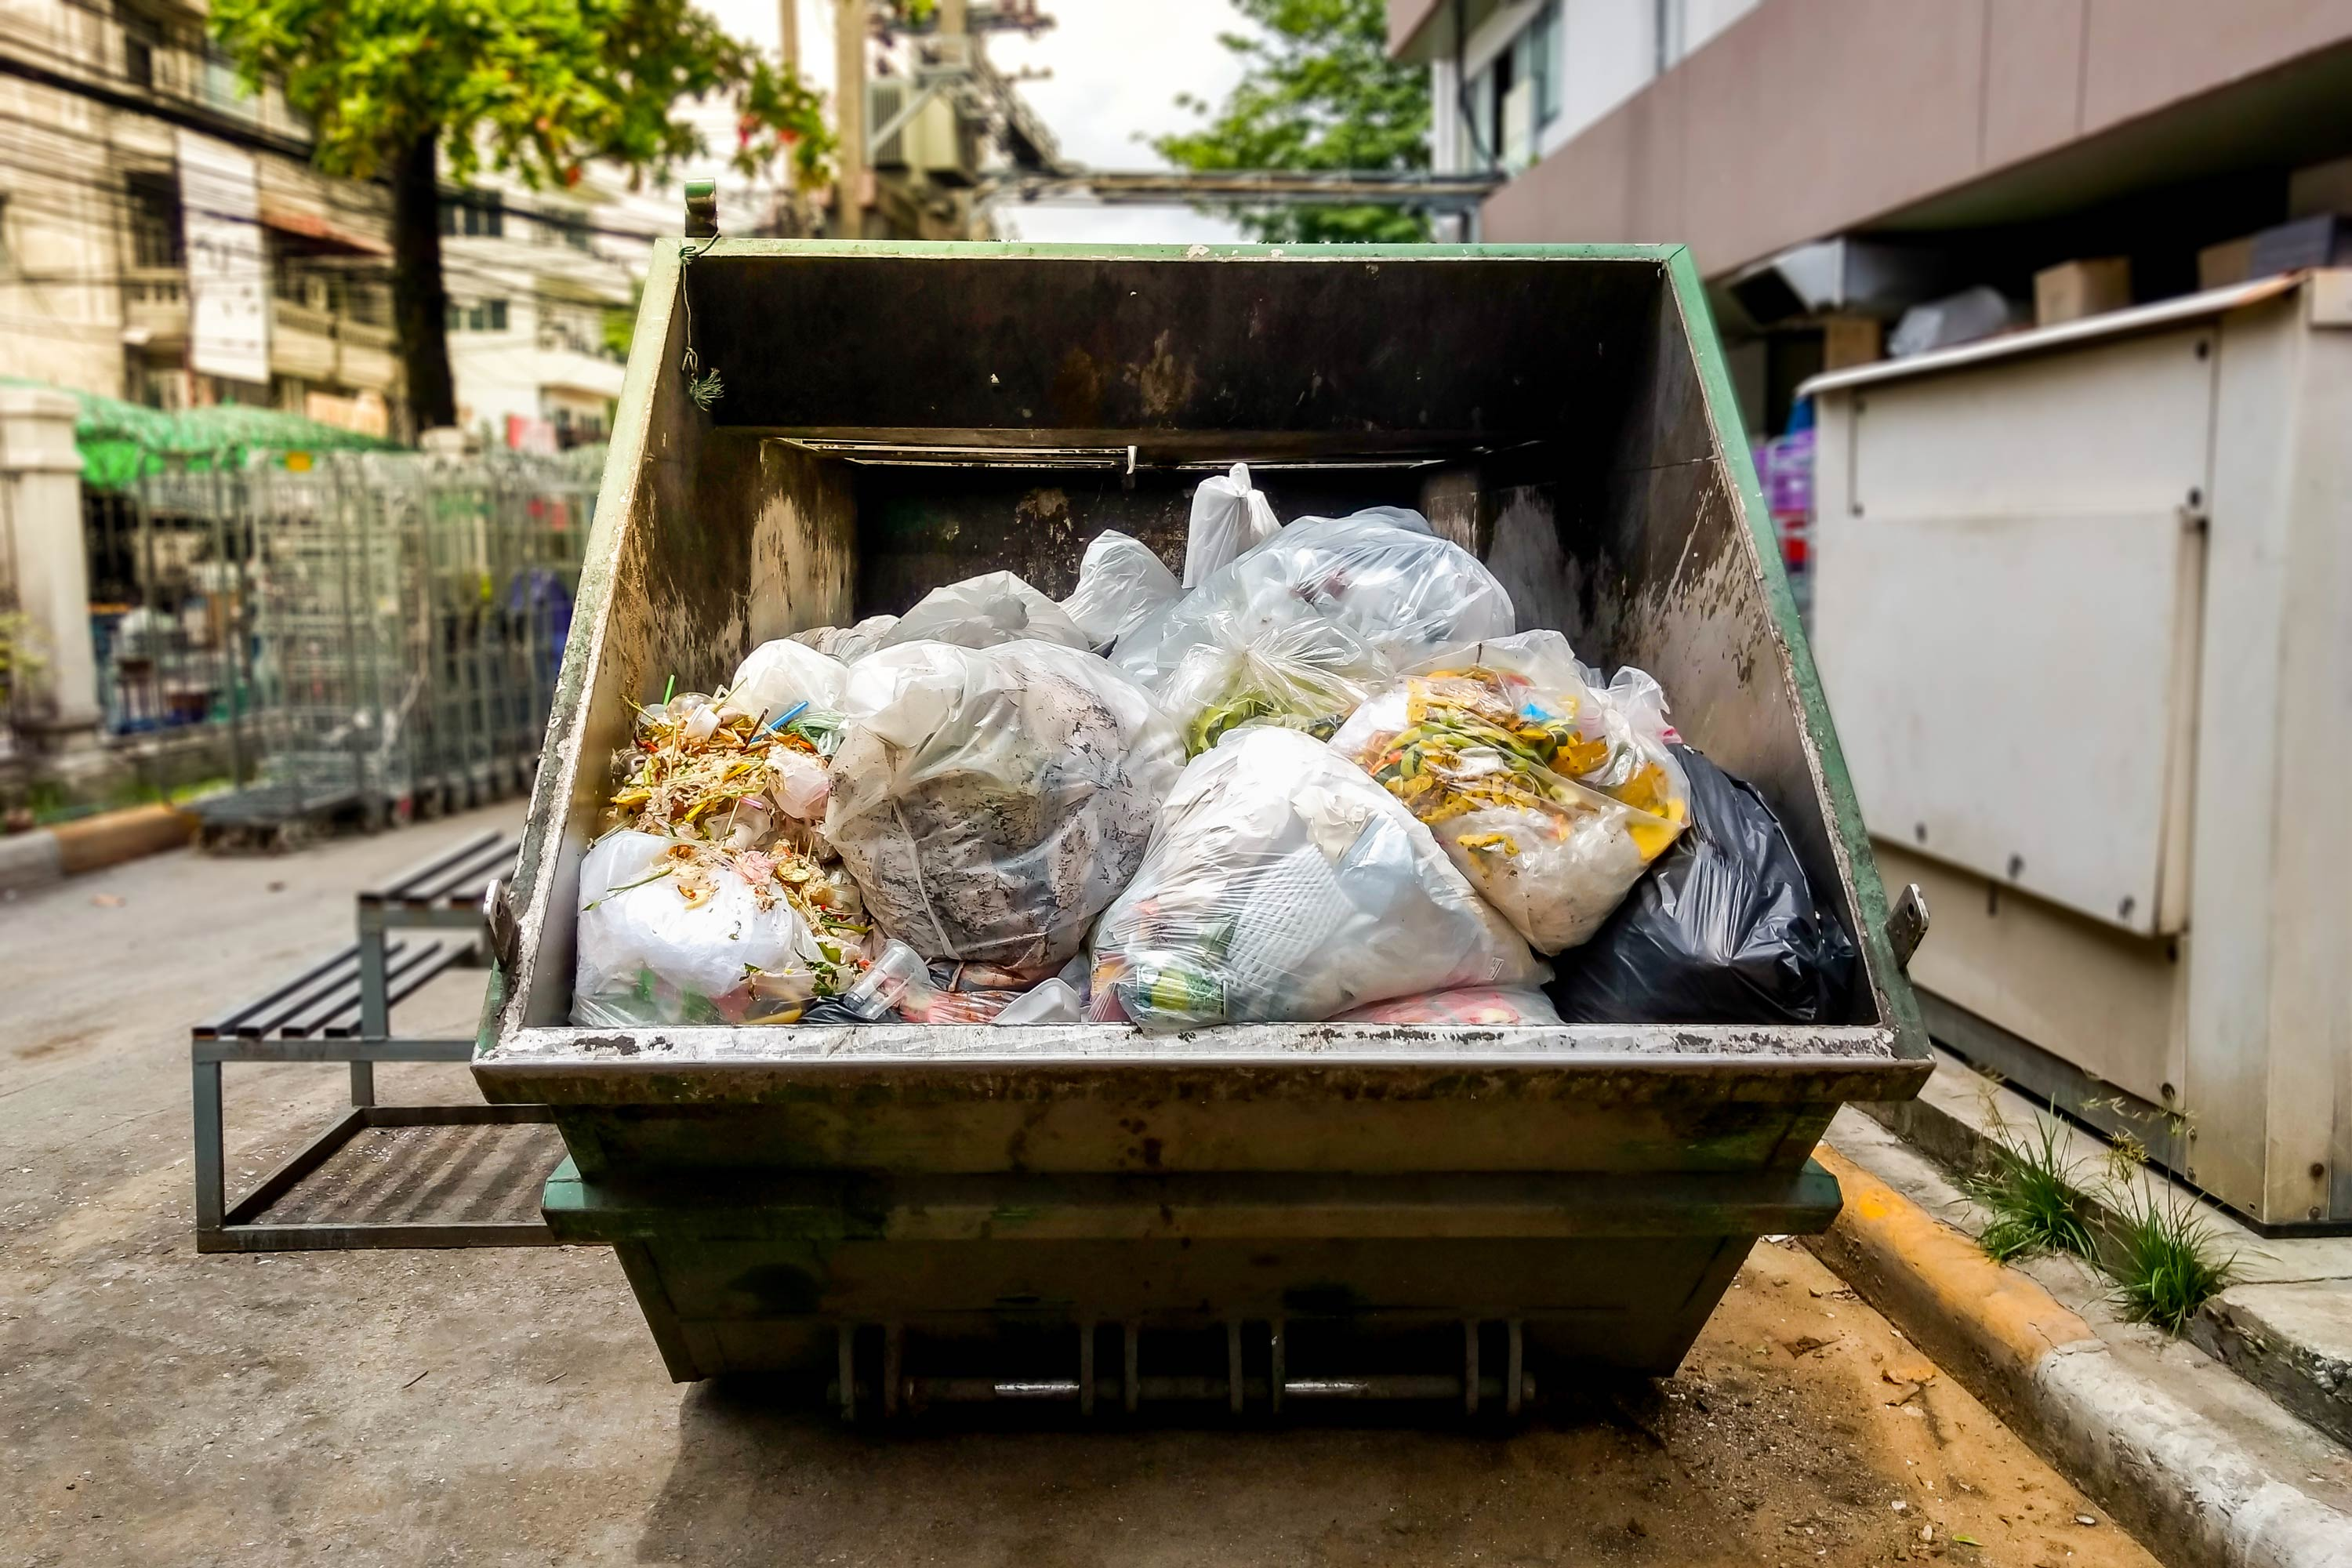 Food Waste in Garbage Truck CLEAR Center